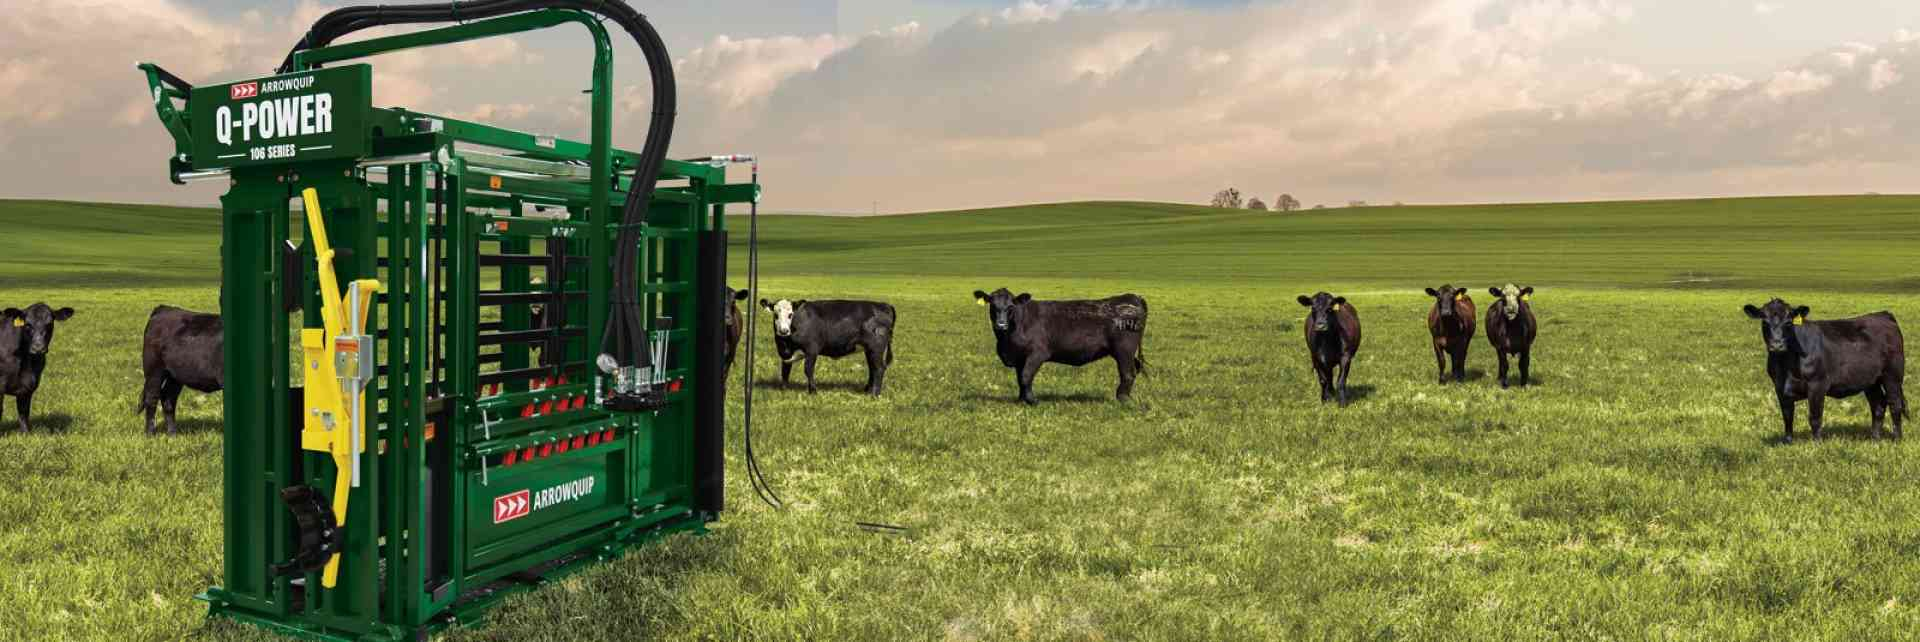 Hydraulic Cattle Chute | Q-Power 106 Series Cattle Chute | Arrowquip Cattle Equipment